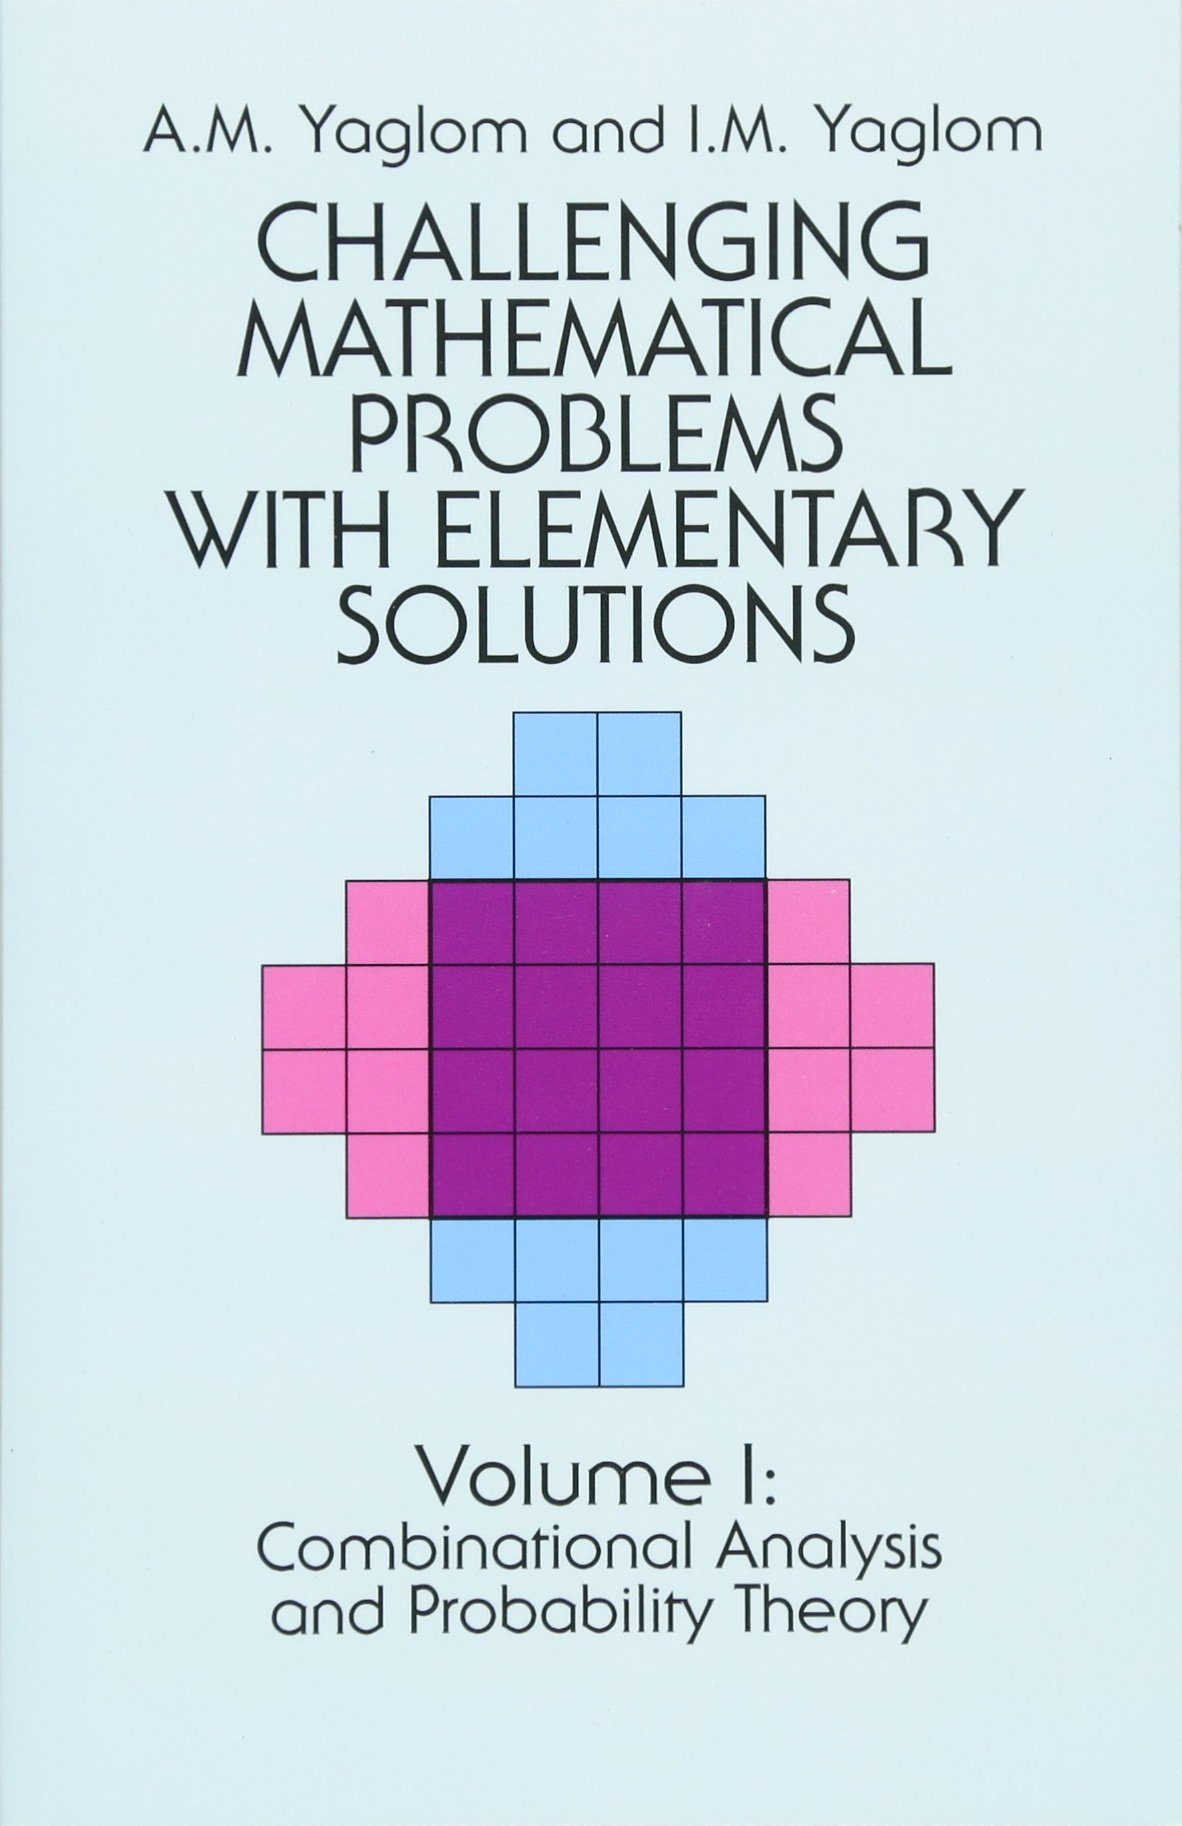 Challenging Mathematical Problems With Elementary Solutions Vol 1